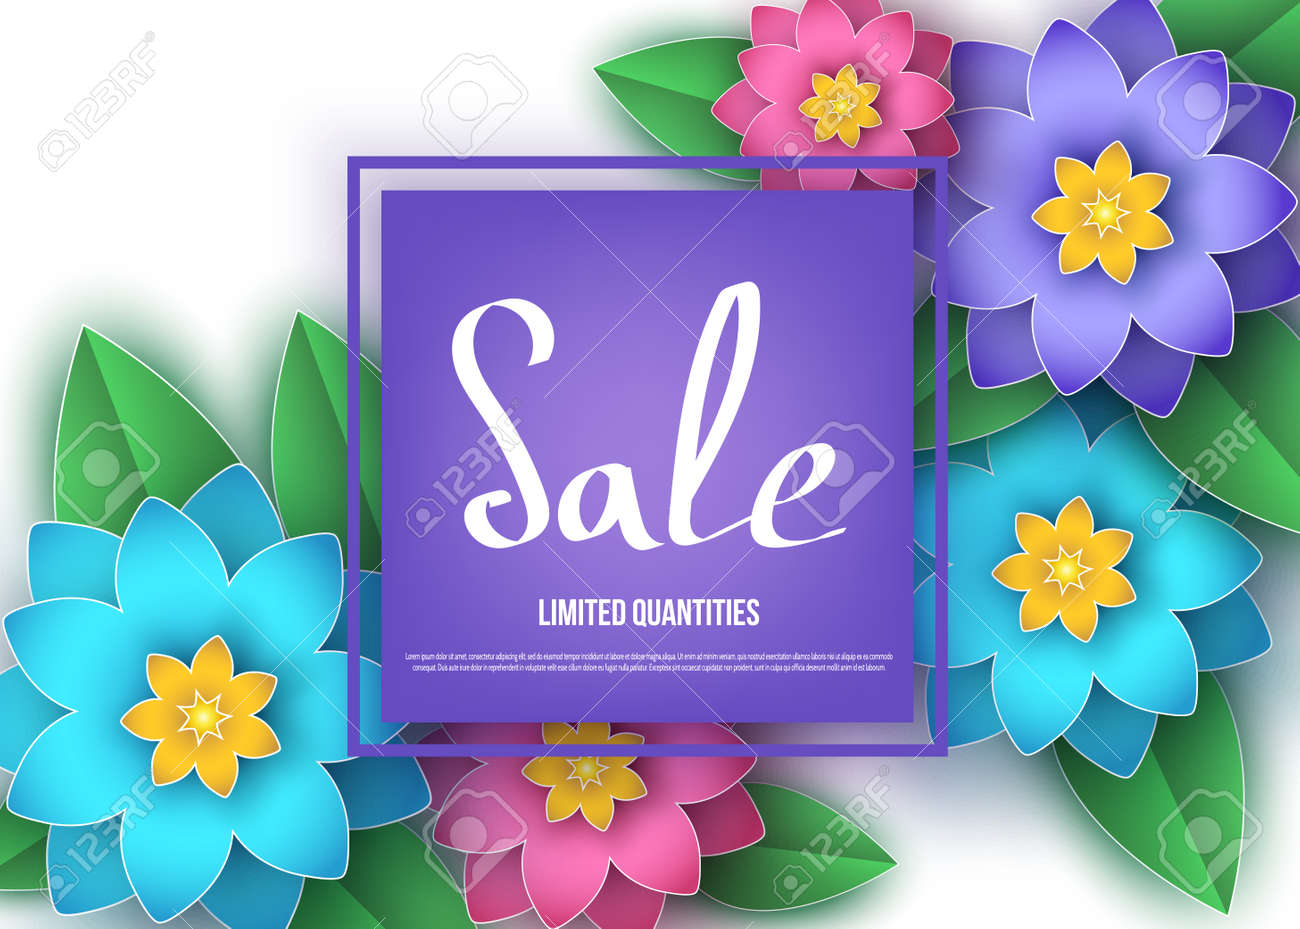 Spring Or Summer Season Sale Banner With Colorful Flowers Royalty